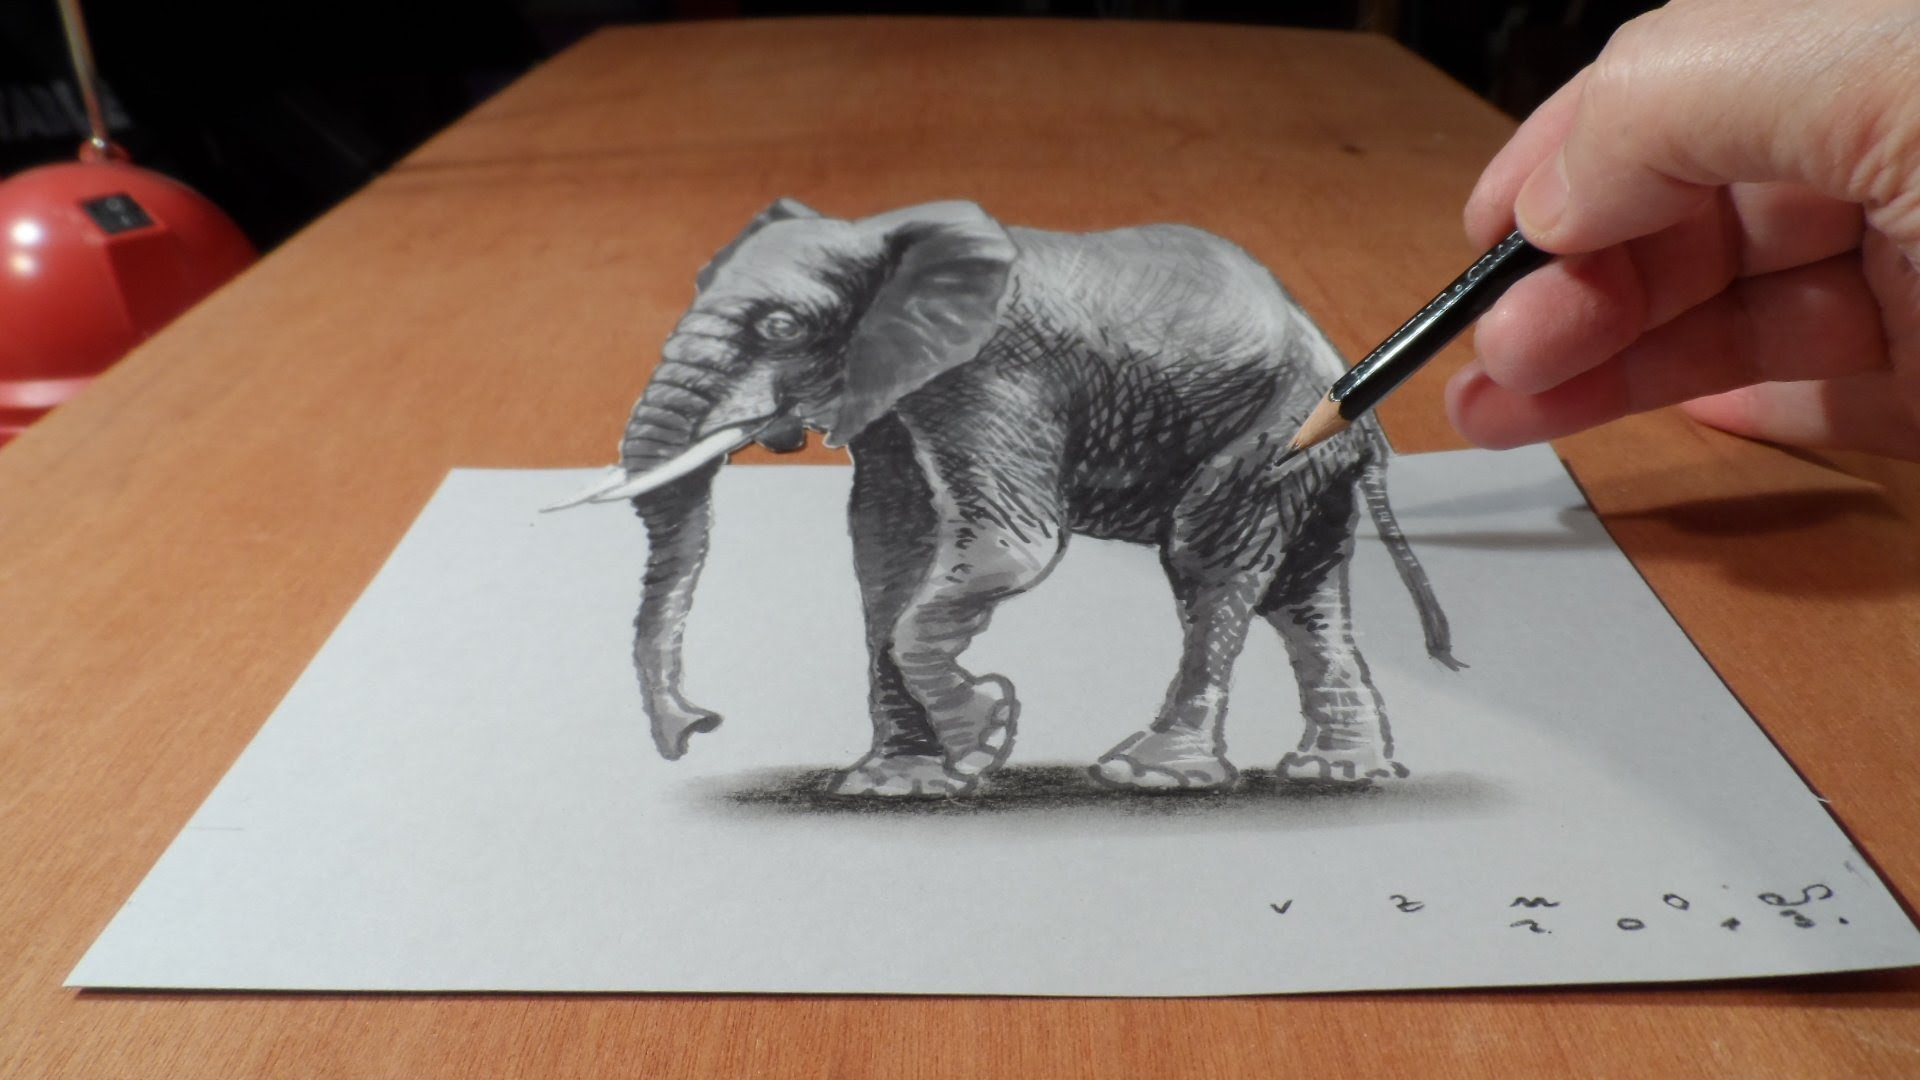 Drawn 3d art #4